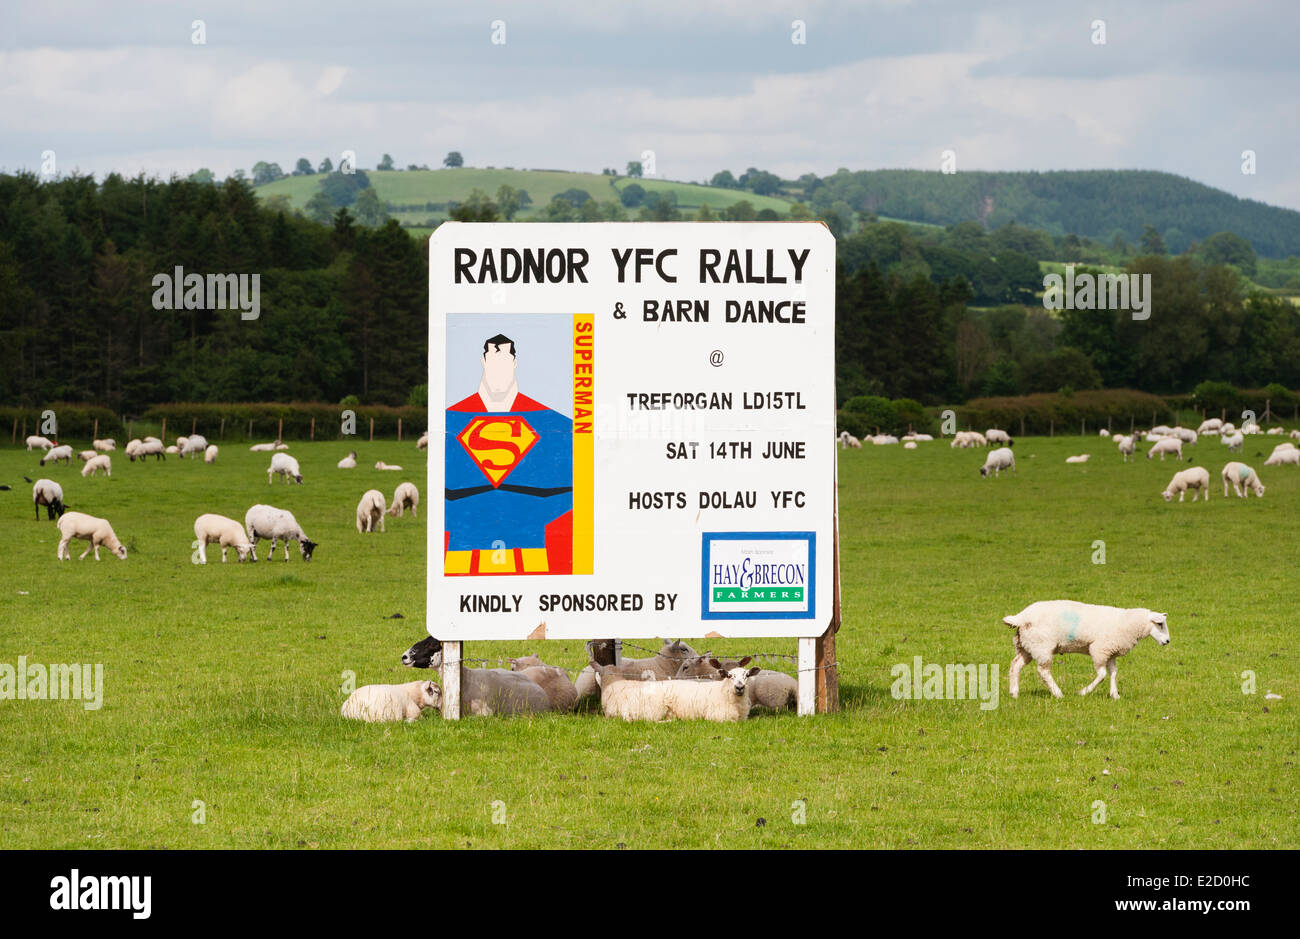 Sign advertising a Young Farmers' Club barn dance and rally, Radnorshire, Wales, UK - Stock Image